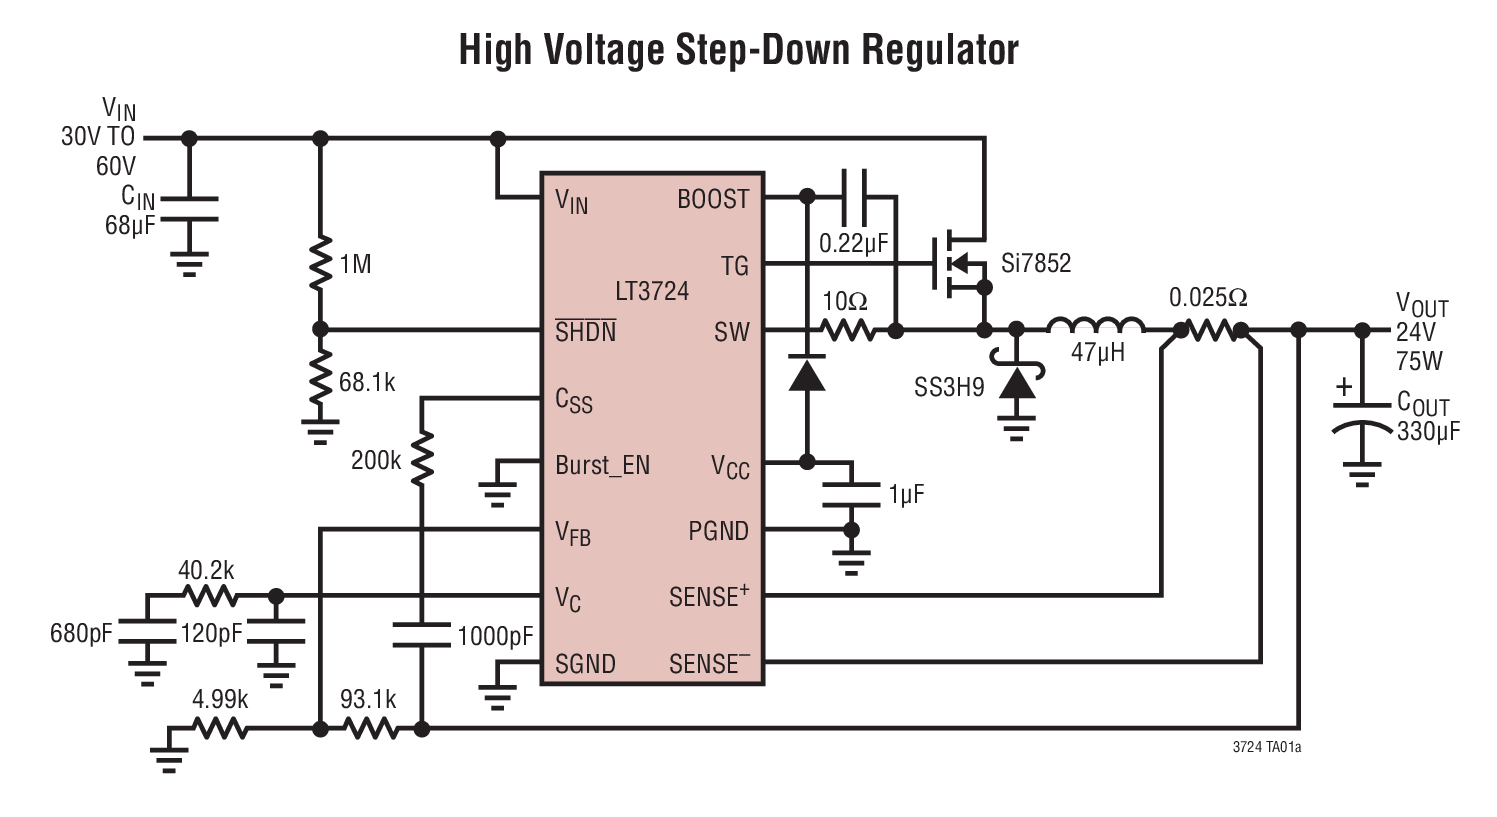 Lt3724 High Voltage Current Mode Switching Regulator Controller Compared To Linear Regulators The Typical Application